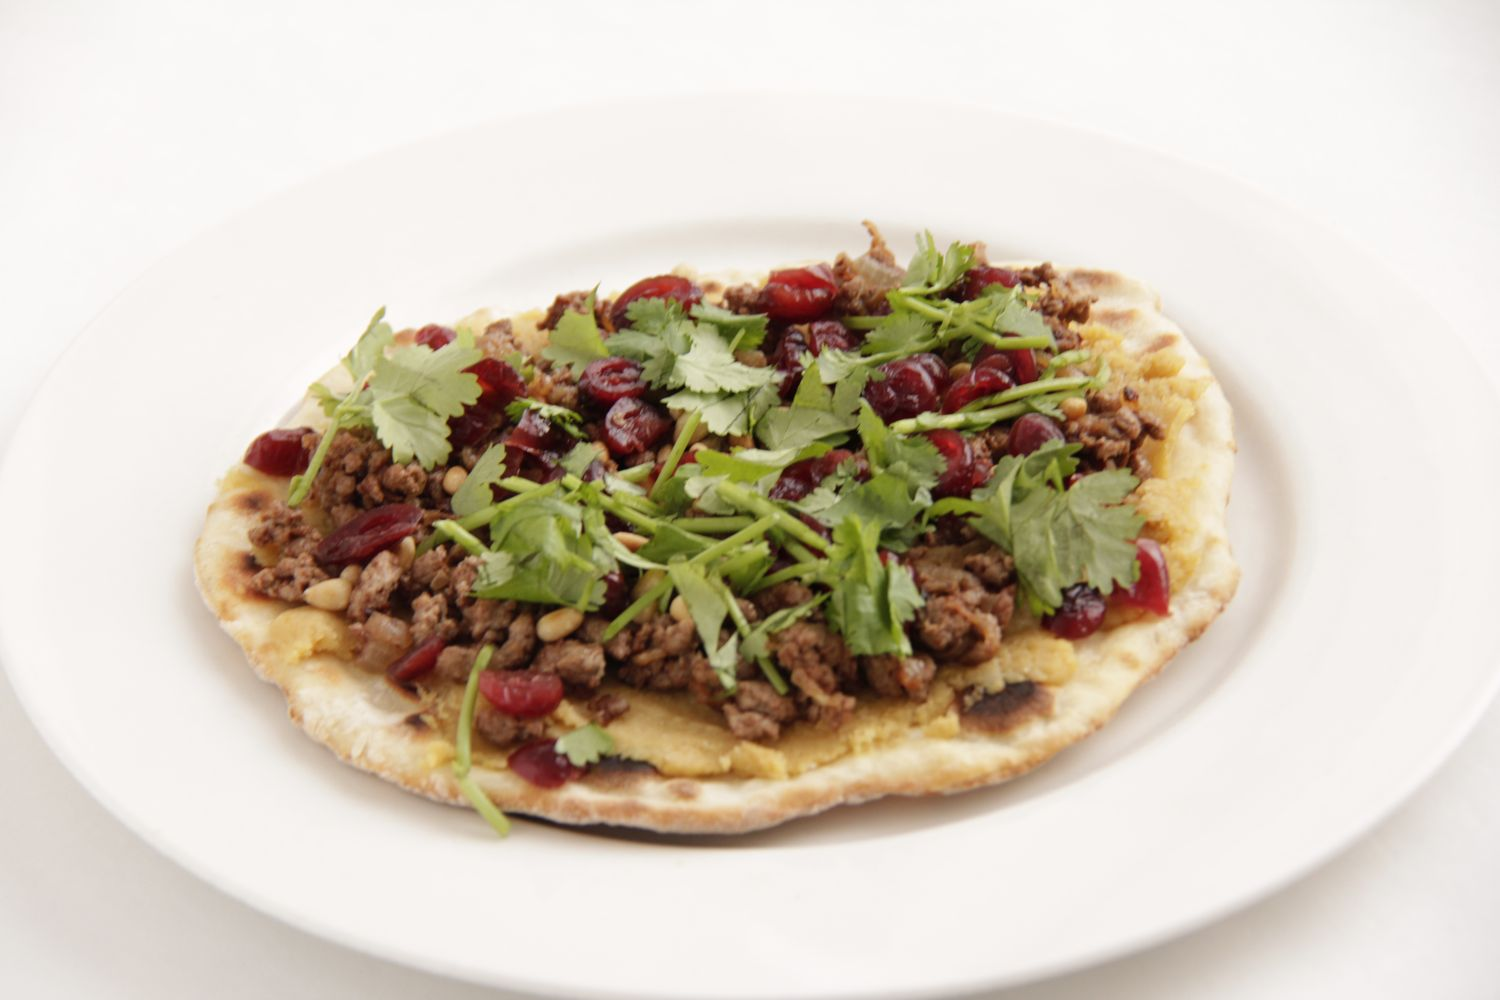 Home made flat bread used to make Middle Eastern pizza with lamb and cranberries for one